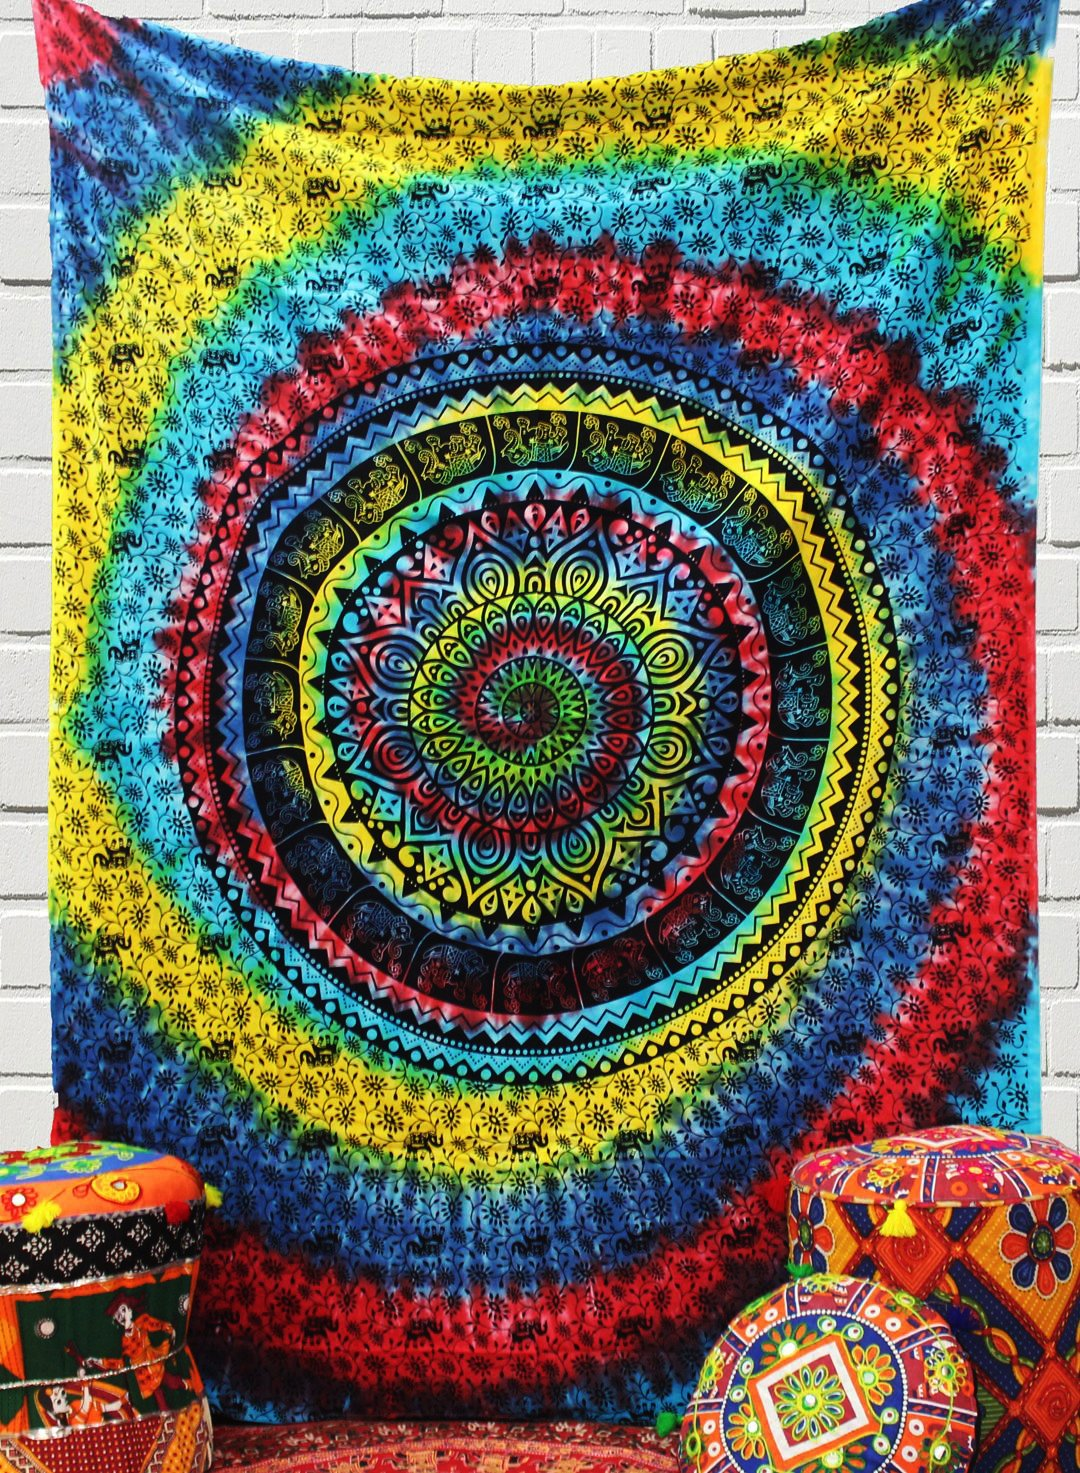 The Indian Craft Psychedelic Mandala Tapestry Bohemian Elephant Hanging Tie Dye Tapestries Hippie Wall Decor Twin Size Bedding Pure Cotton Home Decorative Table Cloth Cover Perfect Gift Option